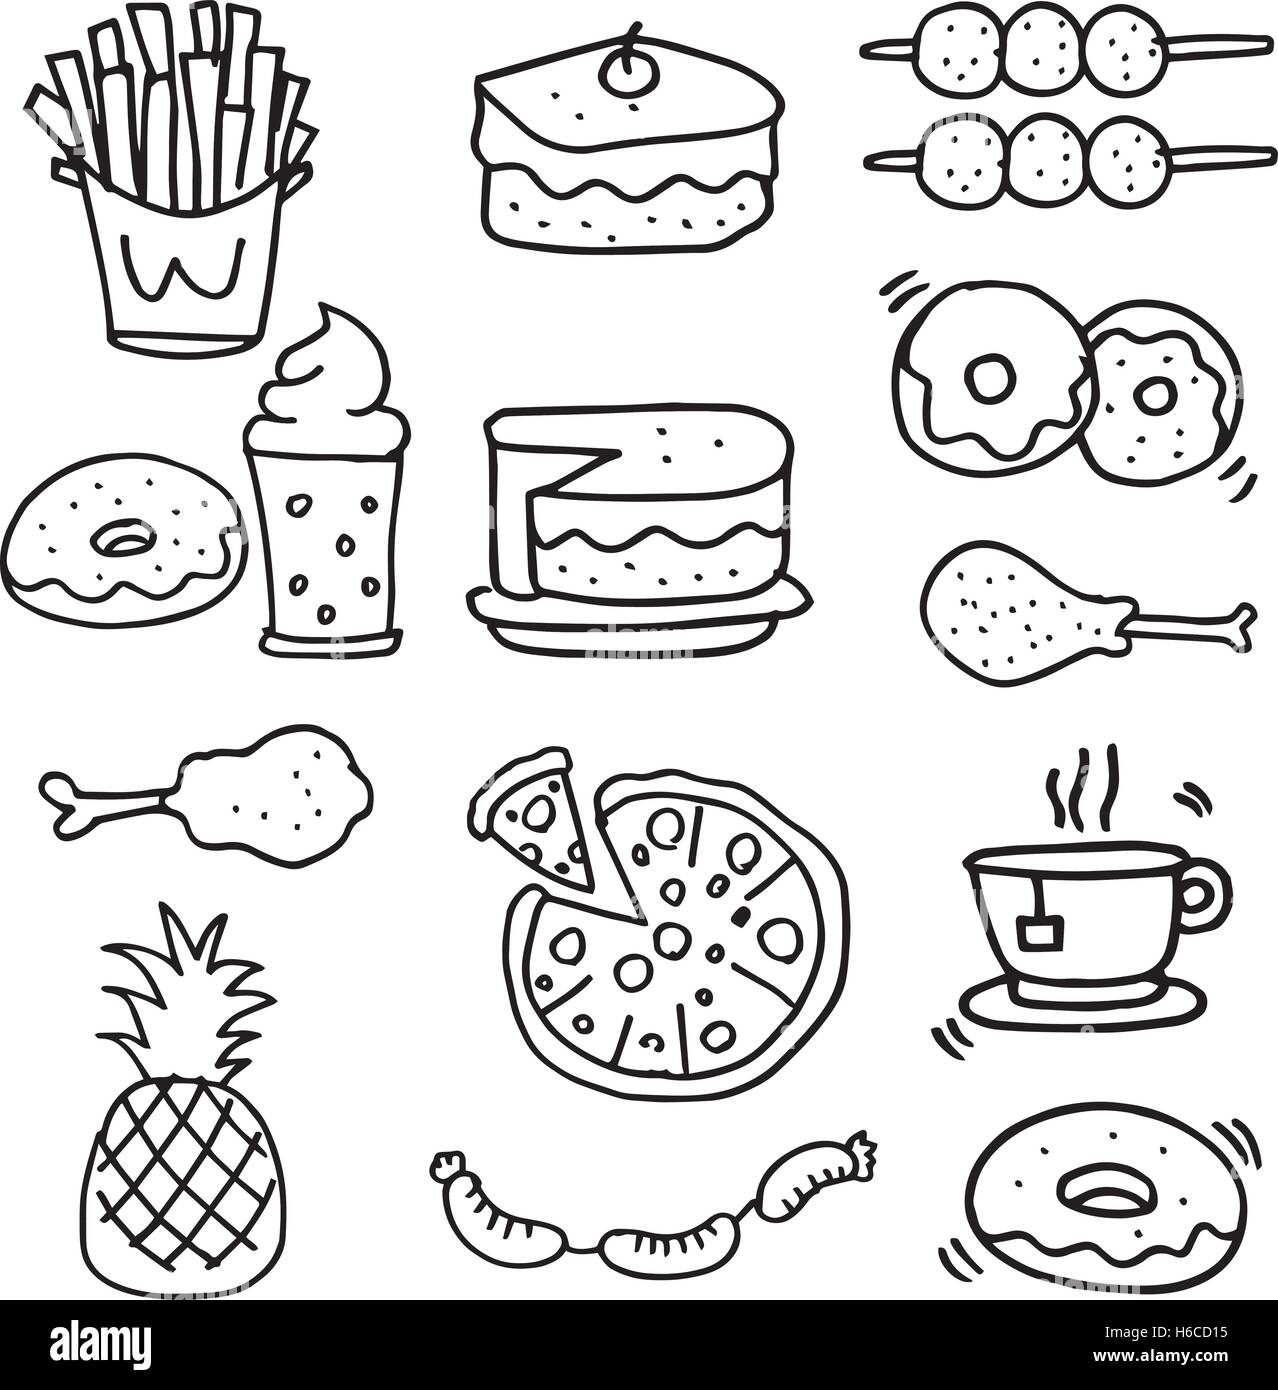 Doodle Of Food Breakfast Lunch Or Dinner Vector Art Stock